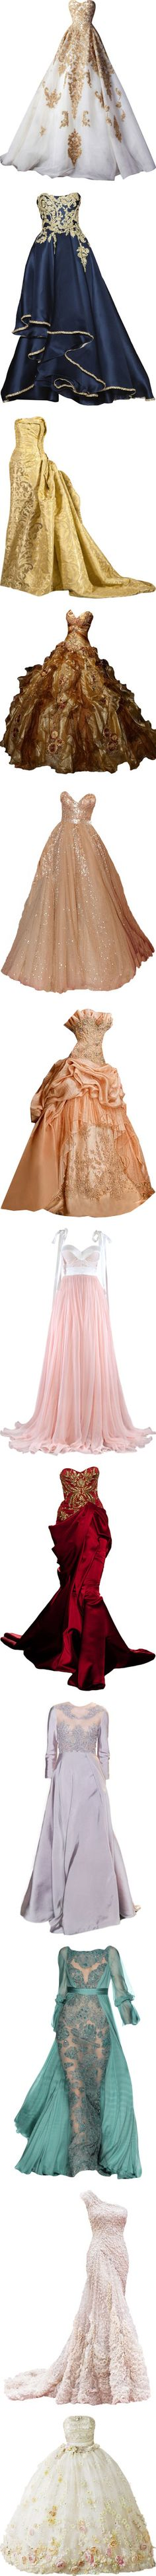 dresses that fuel my desire to be a princess by missherjh on Polyvore featuring dresses, gowns, long dresses, vestidos, long blue evening dress, blue ball gown, blue gown, blue evening dress, marchesa evening gowns and tube dress| I love the first one